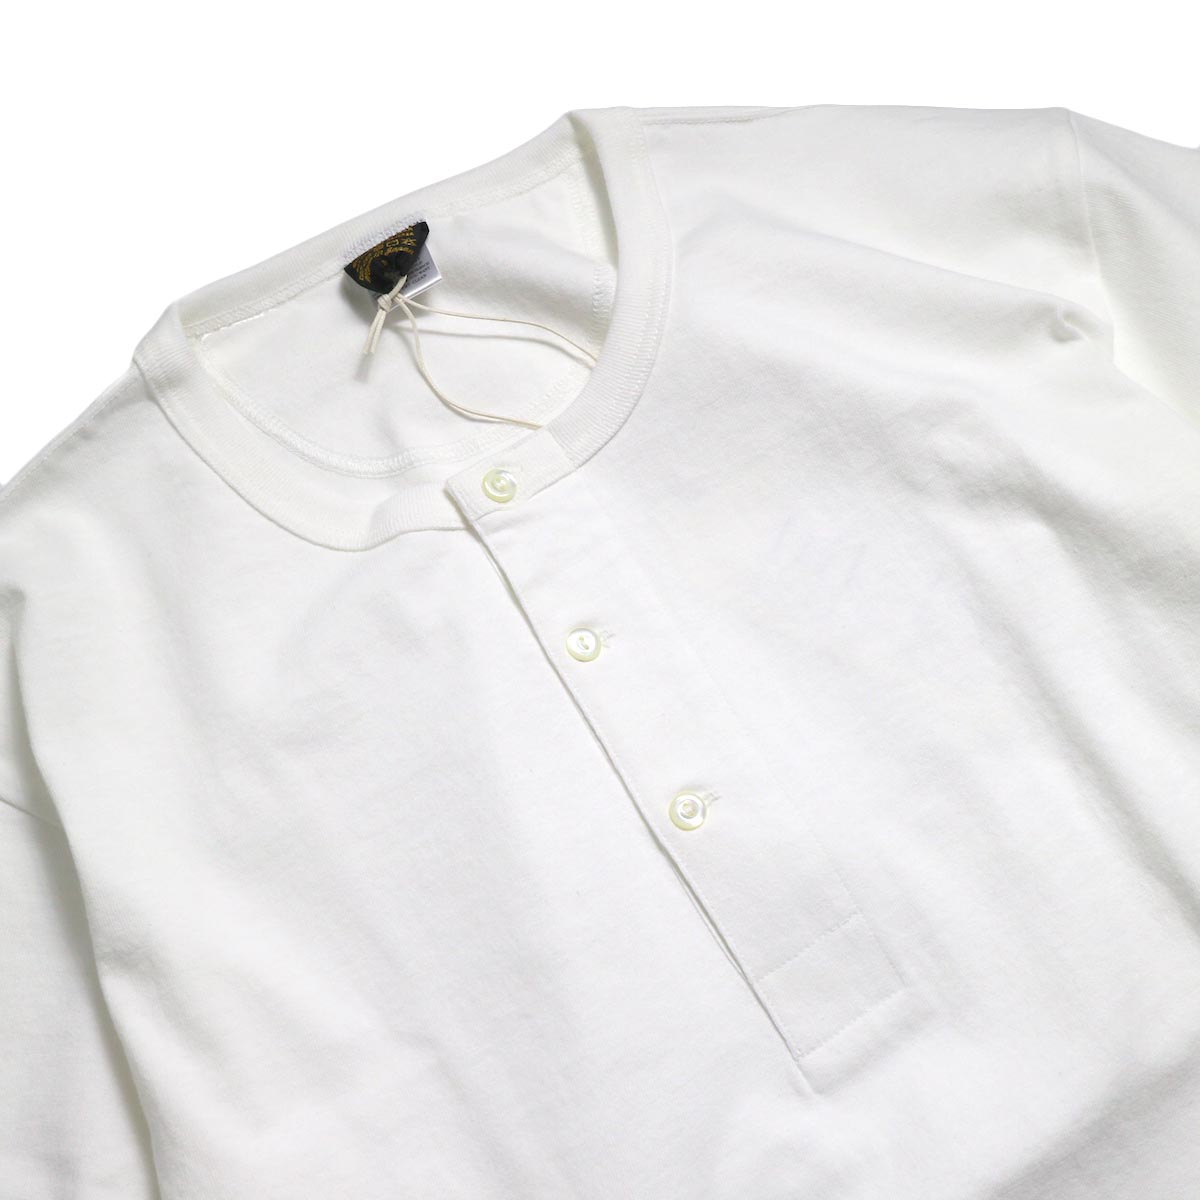 A VONTADE / 1/2 Sleeve Classic Henly Shirts -White 襟